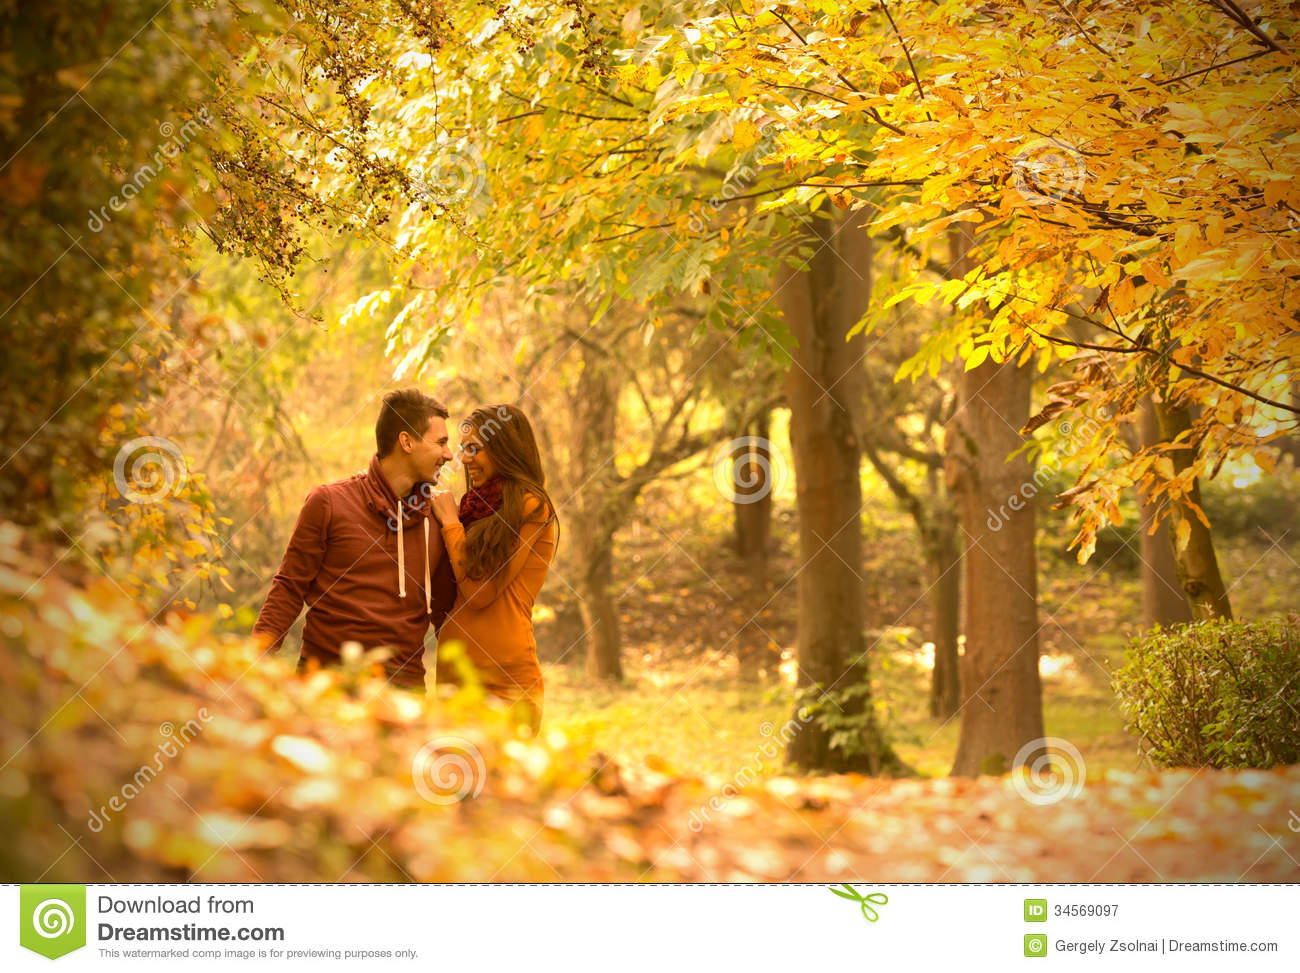 Falling Leaves Wallpaper Animated Passionate Love Stock Image Image Of Colorful Adult